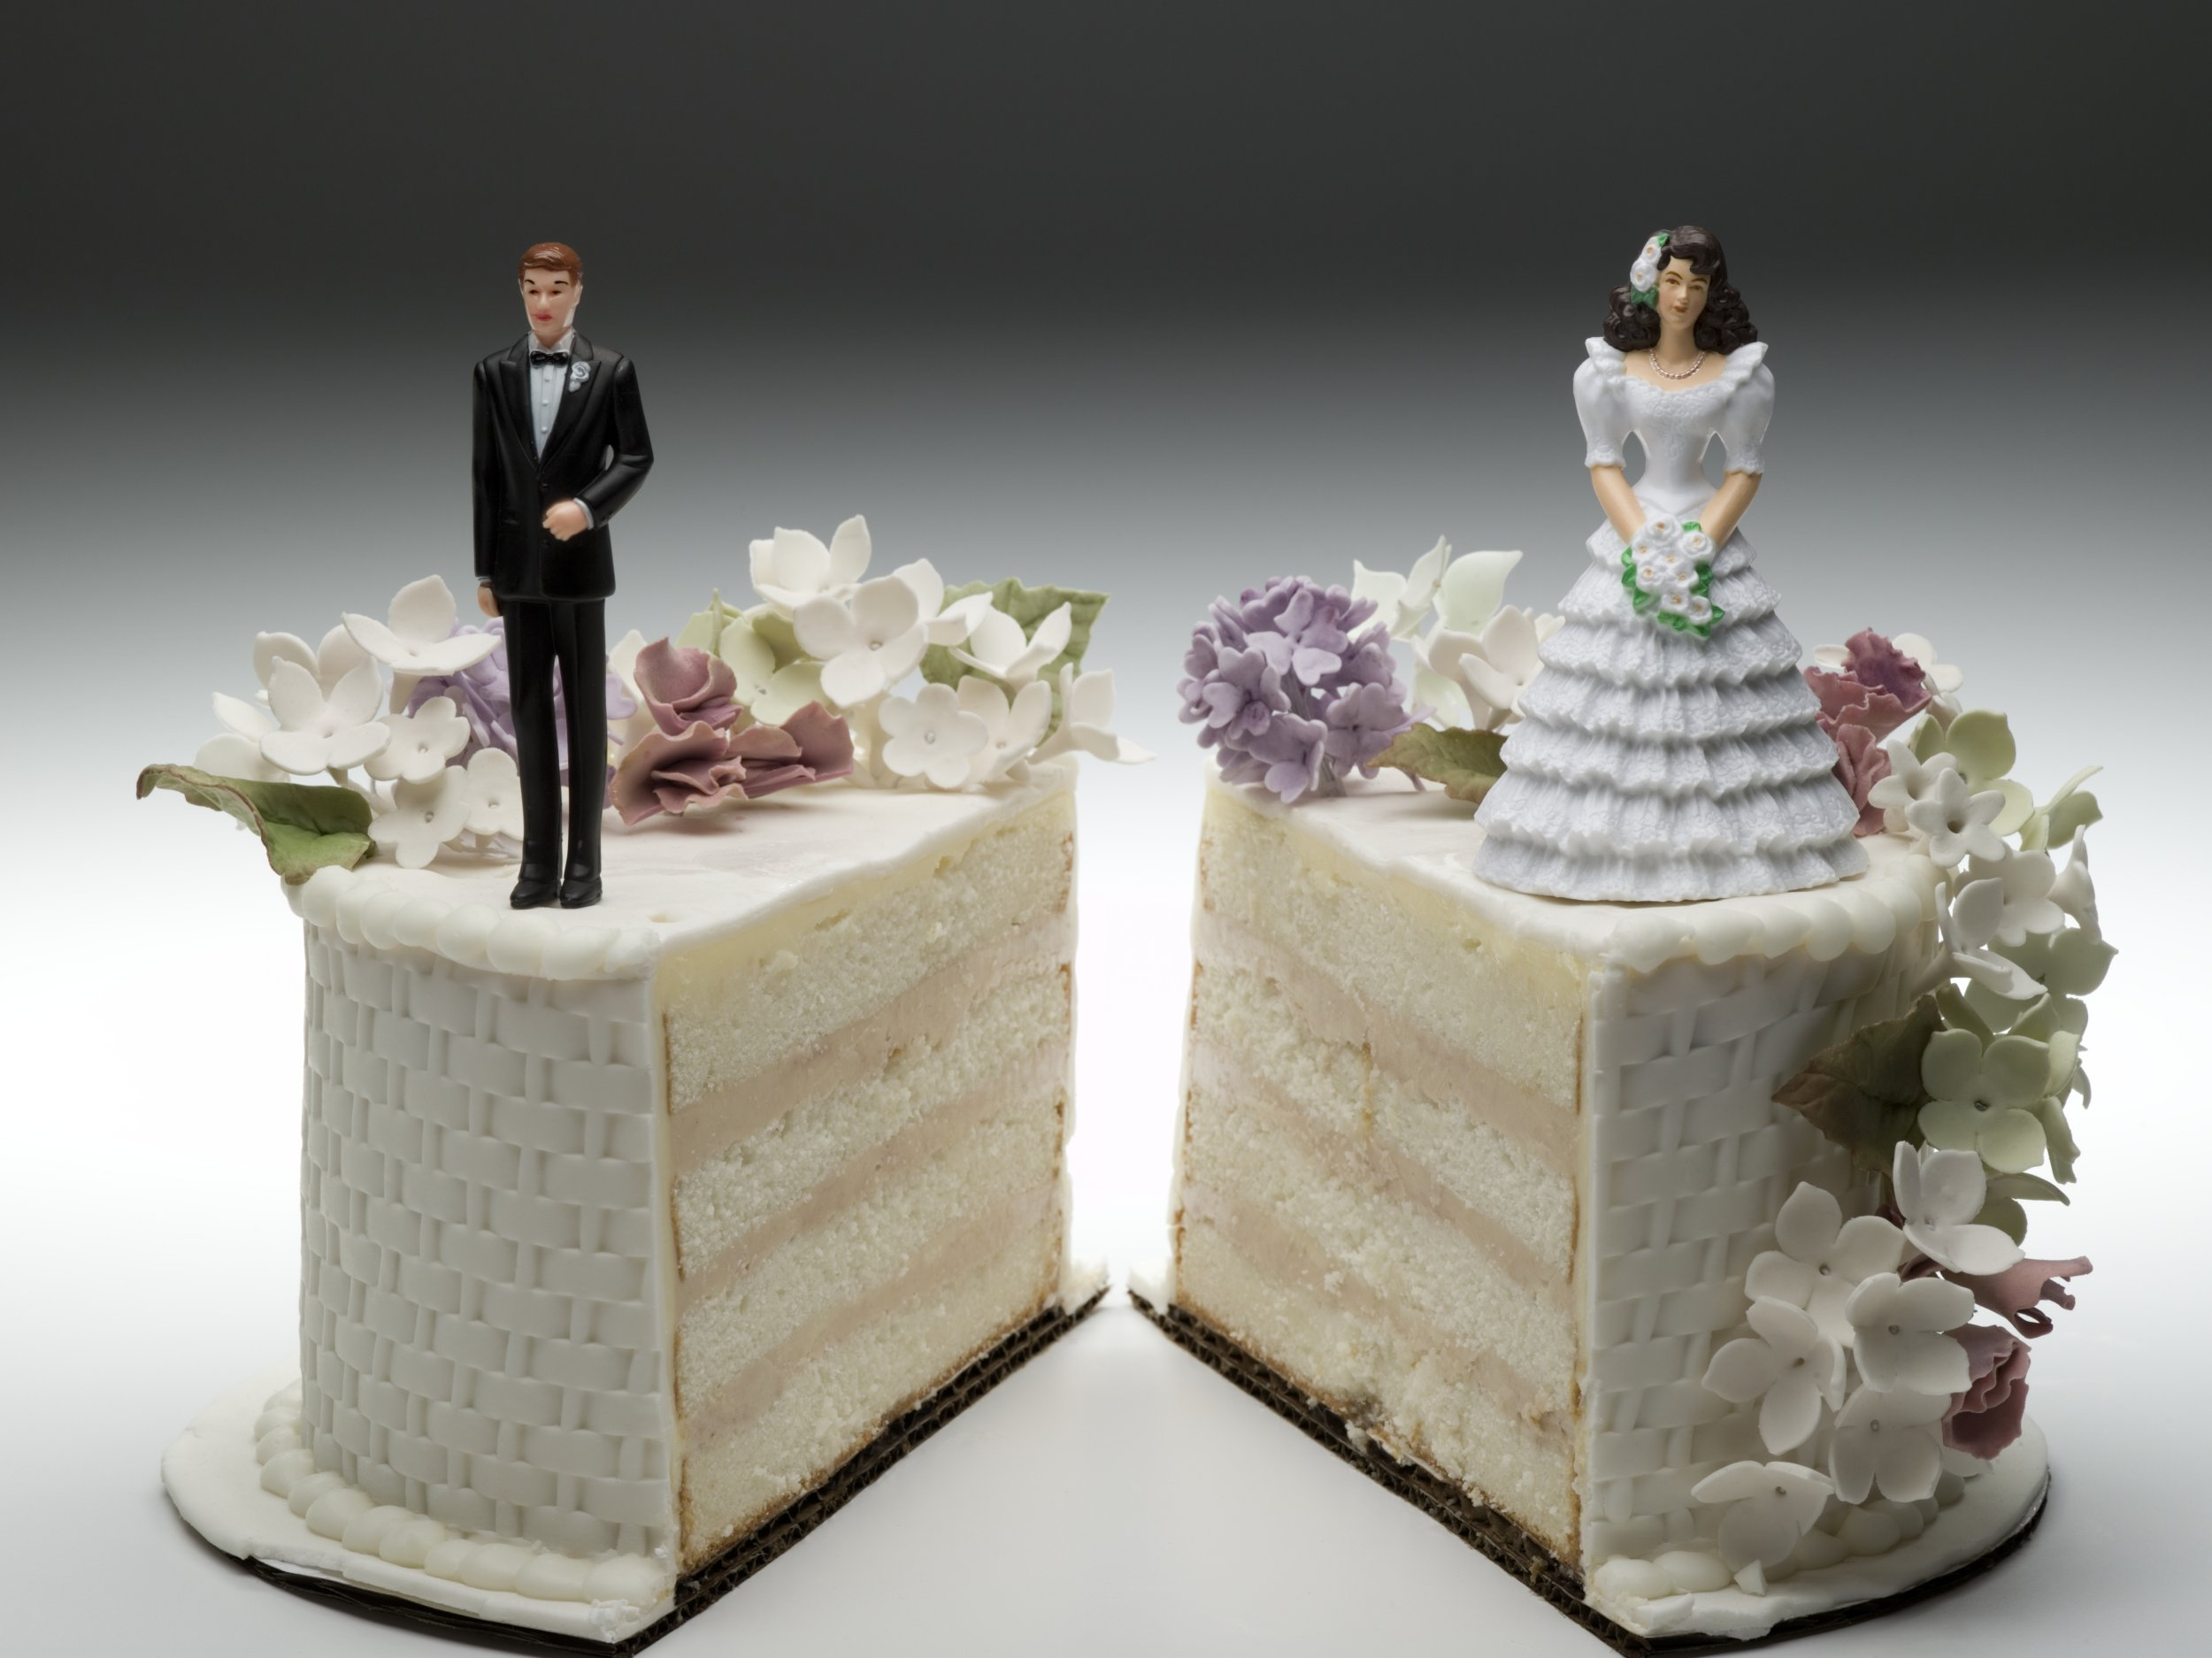 No-fault divorces will make separations easier under shake-up of 'archaic law'